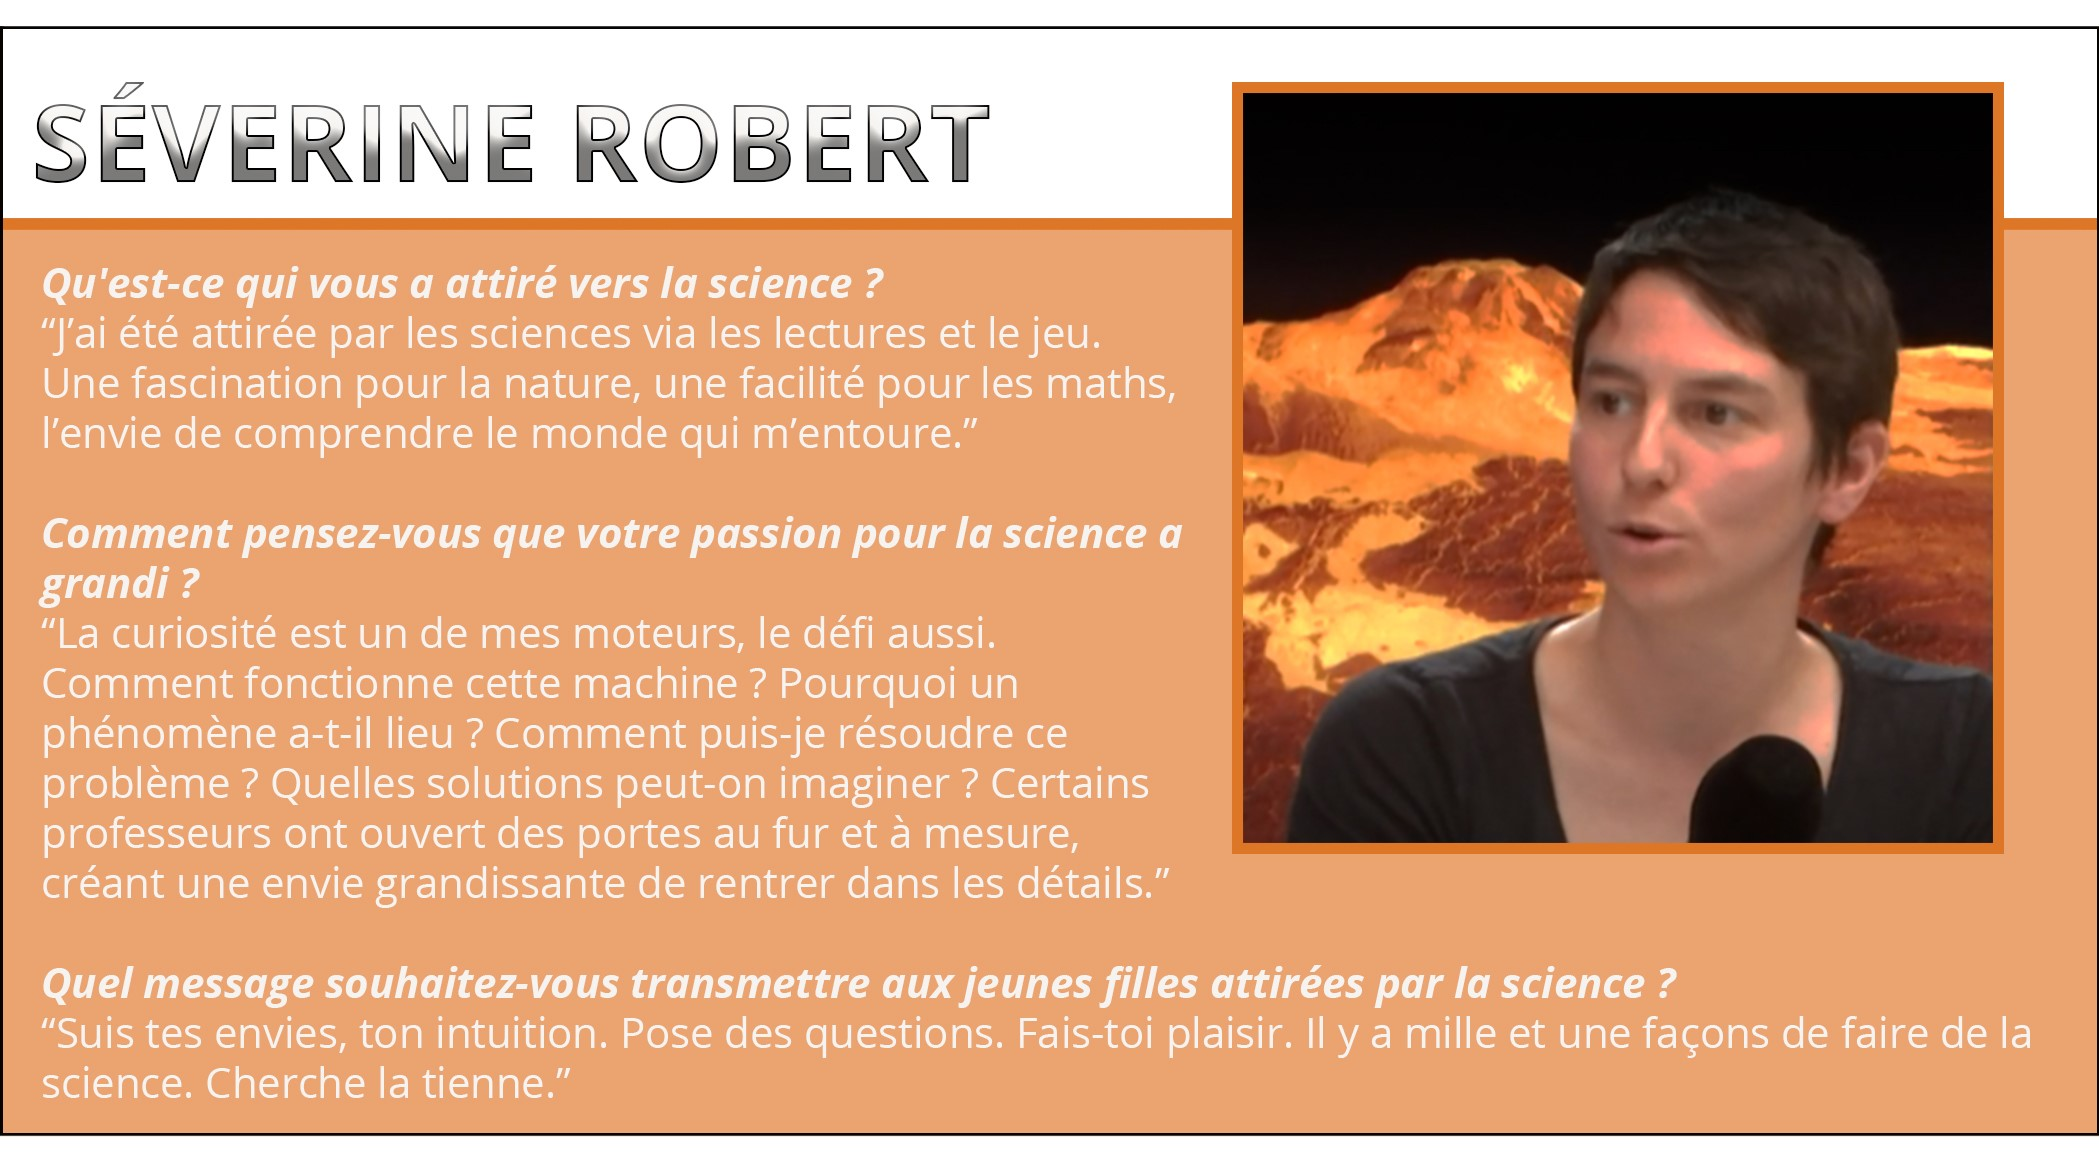 Severine Robert